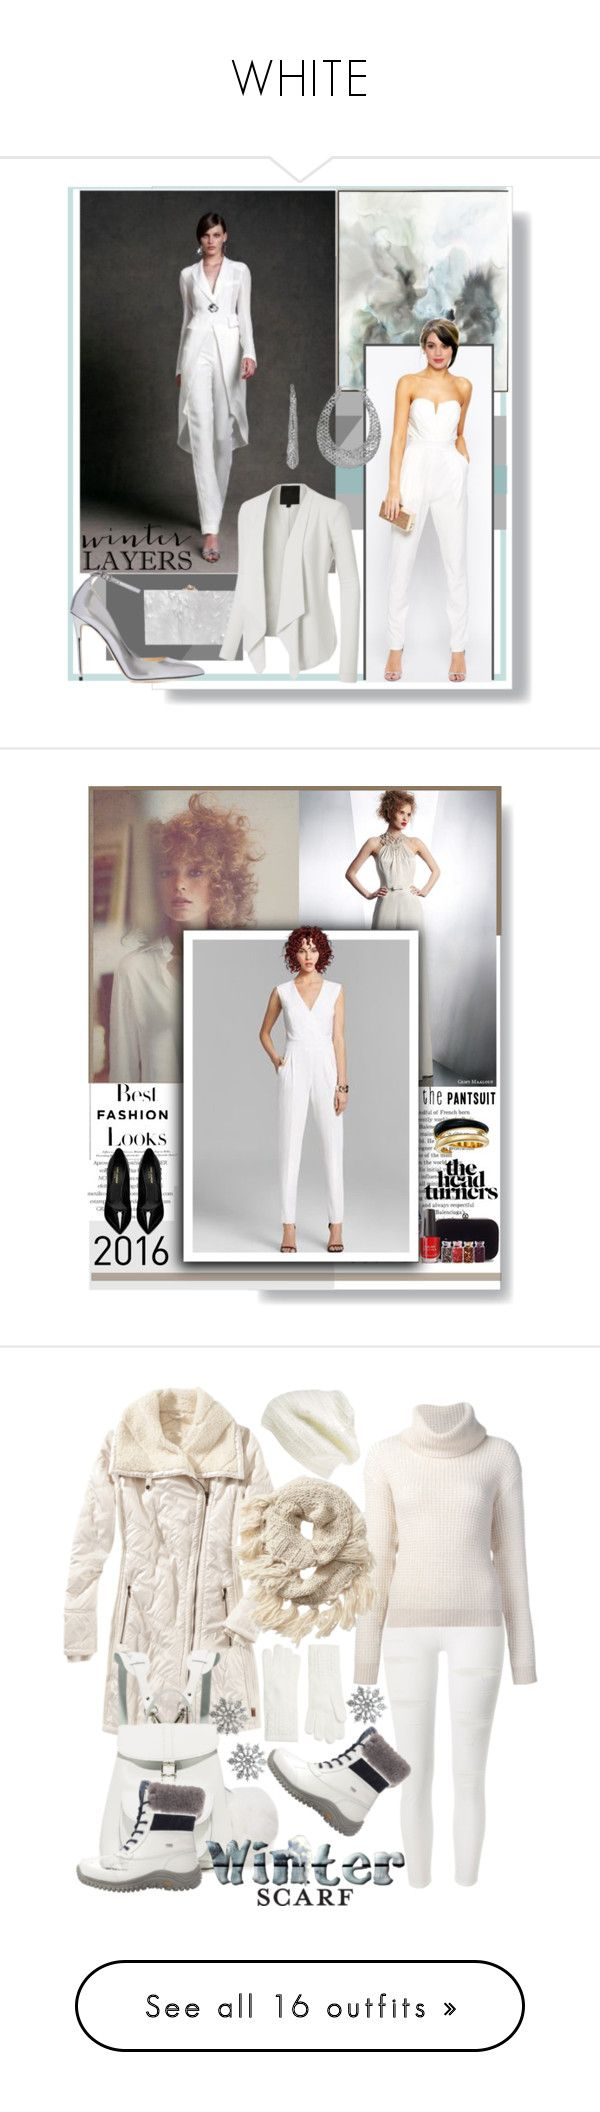 """WHITE"" by beleev ❤ liked on Polyvore featuring John-Richard, Charlotte Olympia, Kane, LE3NO, Jimmy Choo, H&M, Yves Saint Laurent, Michael Kors, besttrend2016 and Title Nine"